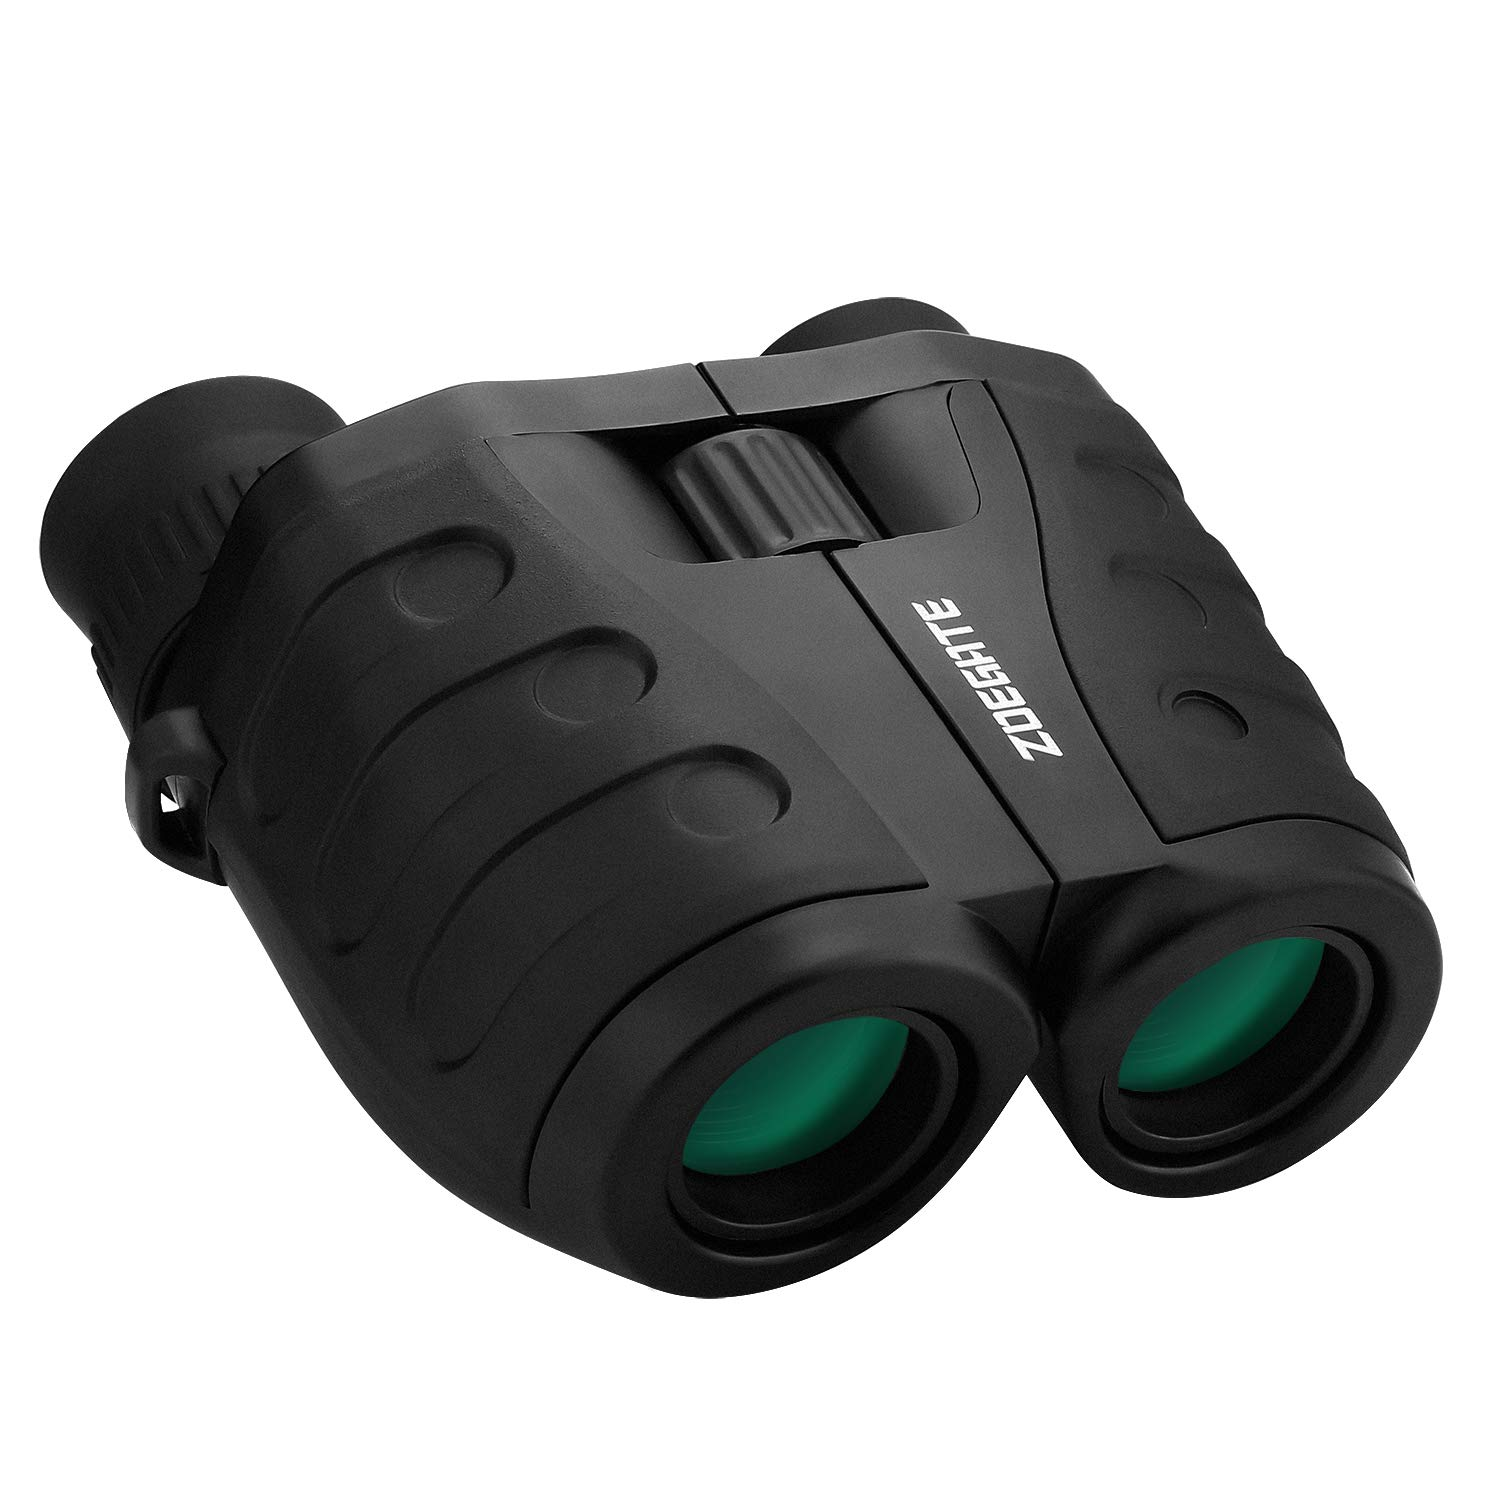 10x25 Binoculars, Speedsporting Mini Compact Folding Binoculars with Powerful Folding Waterproof Telescope with Cleaning Cloth and Carry Case for Outdoor Hiking,Shooting, Travelling, Sightseeing, Hunting, Bird Watching,Concerts